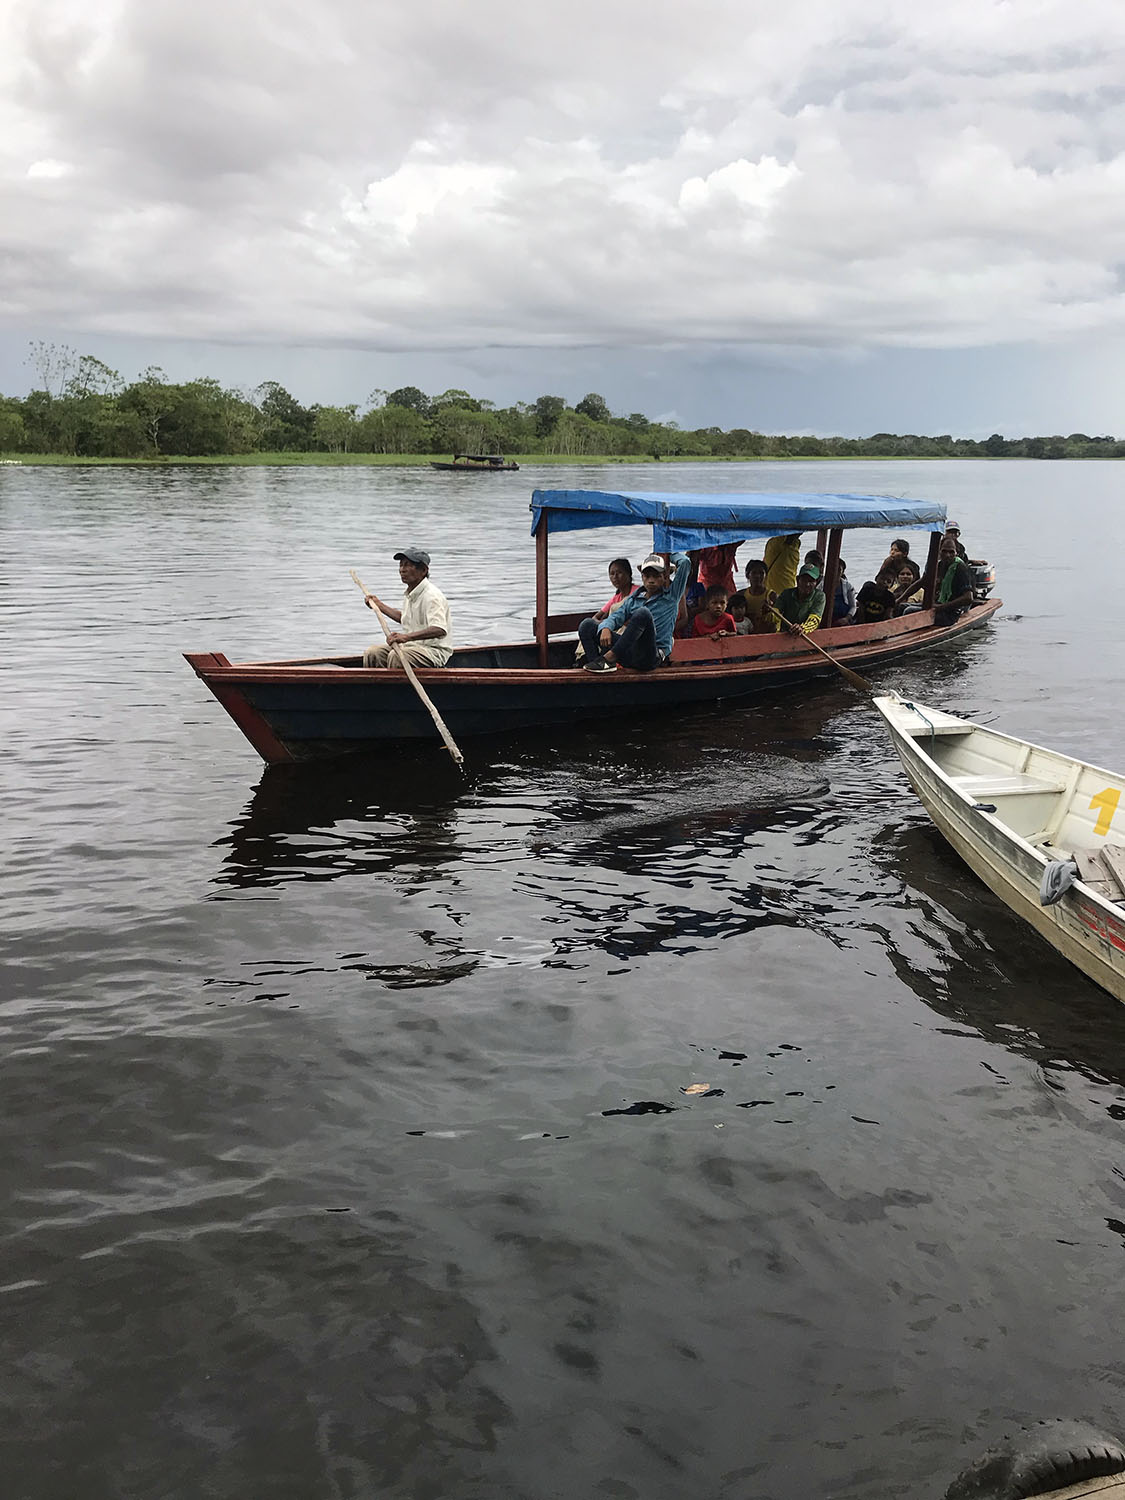 Small boat full of people commuting like a bus on the amazon river